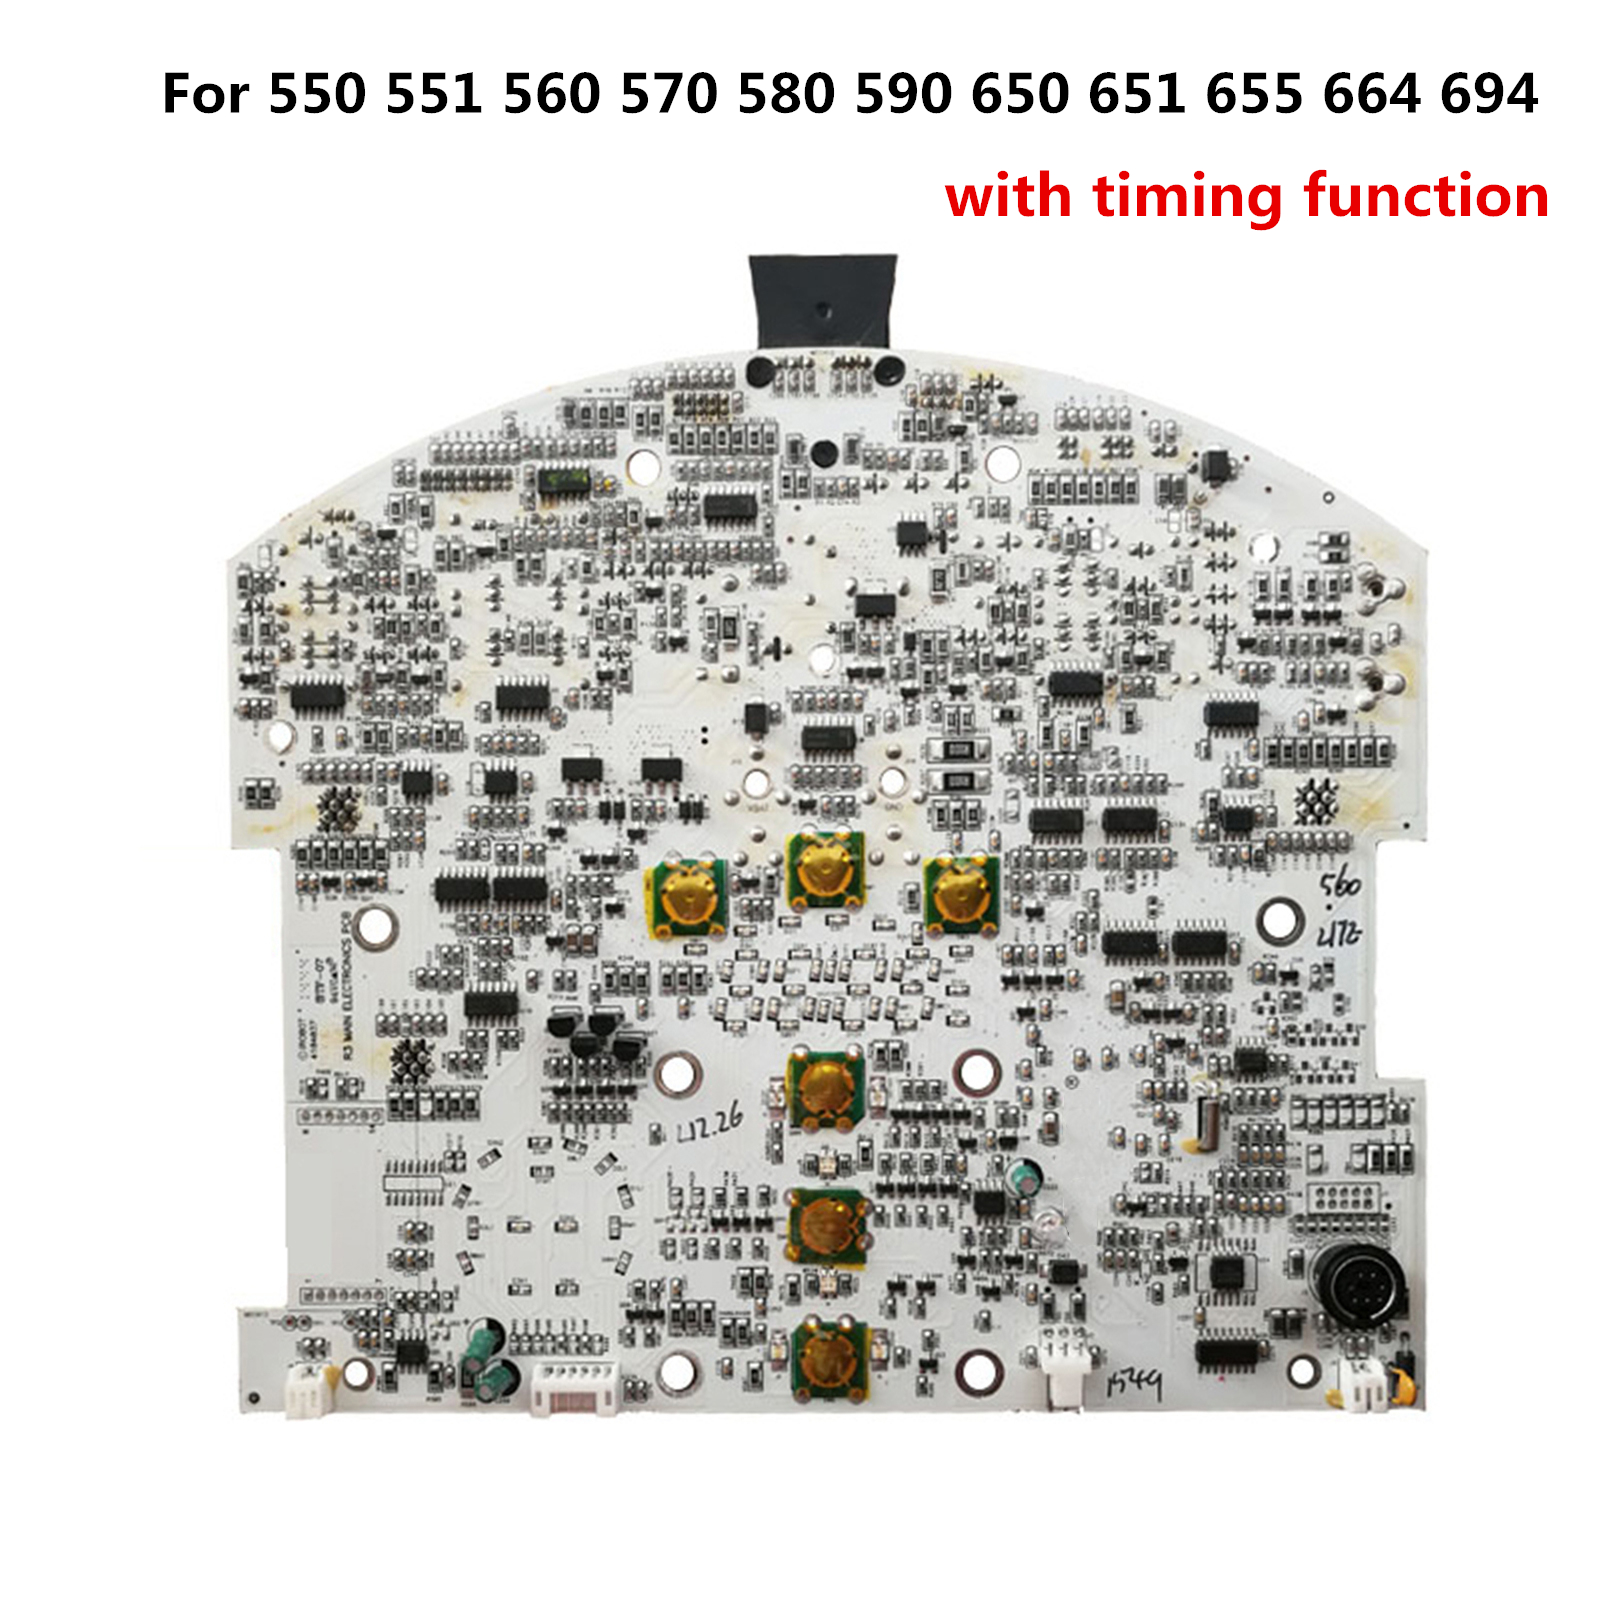 PCB Motherboard For IRobot Roomba Vacuum Cleaners 500 600 Series 570 580 590 650 With Timing Function Circuit Board Mainboard